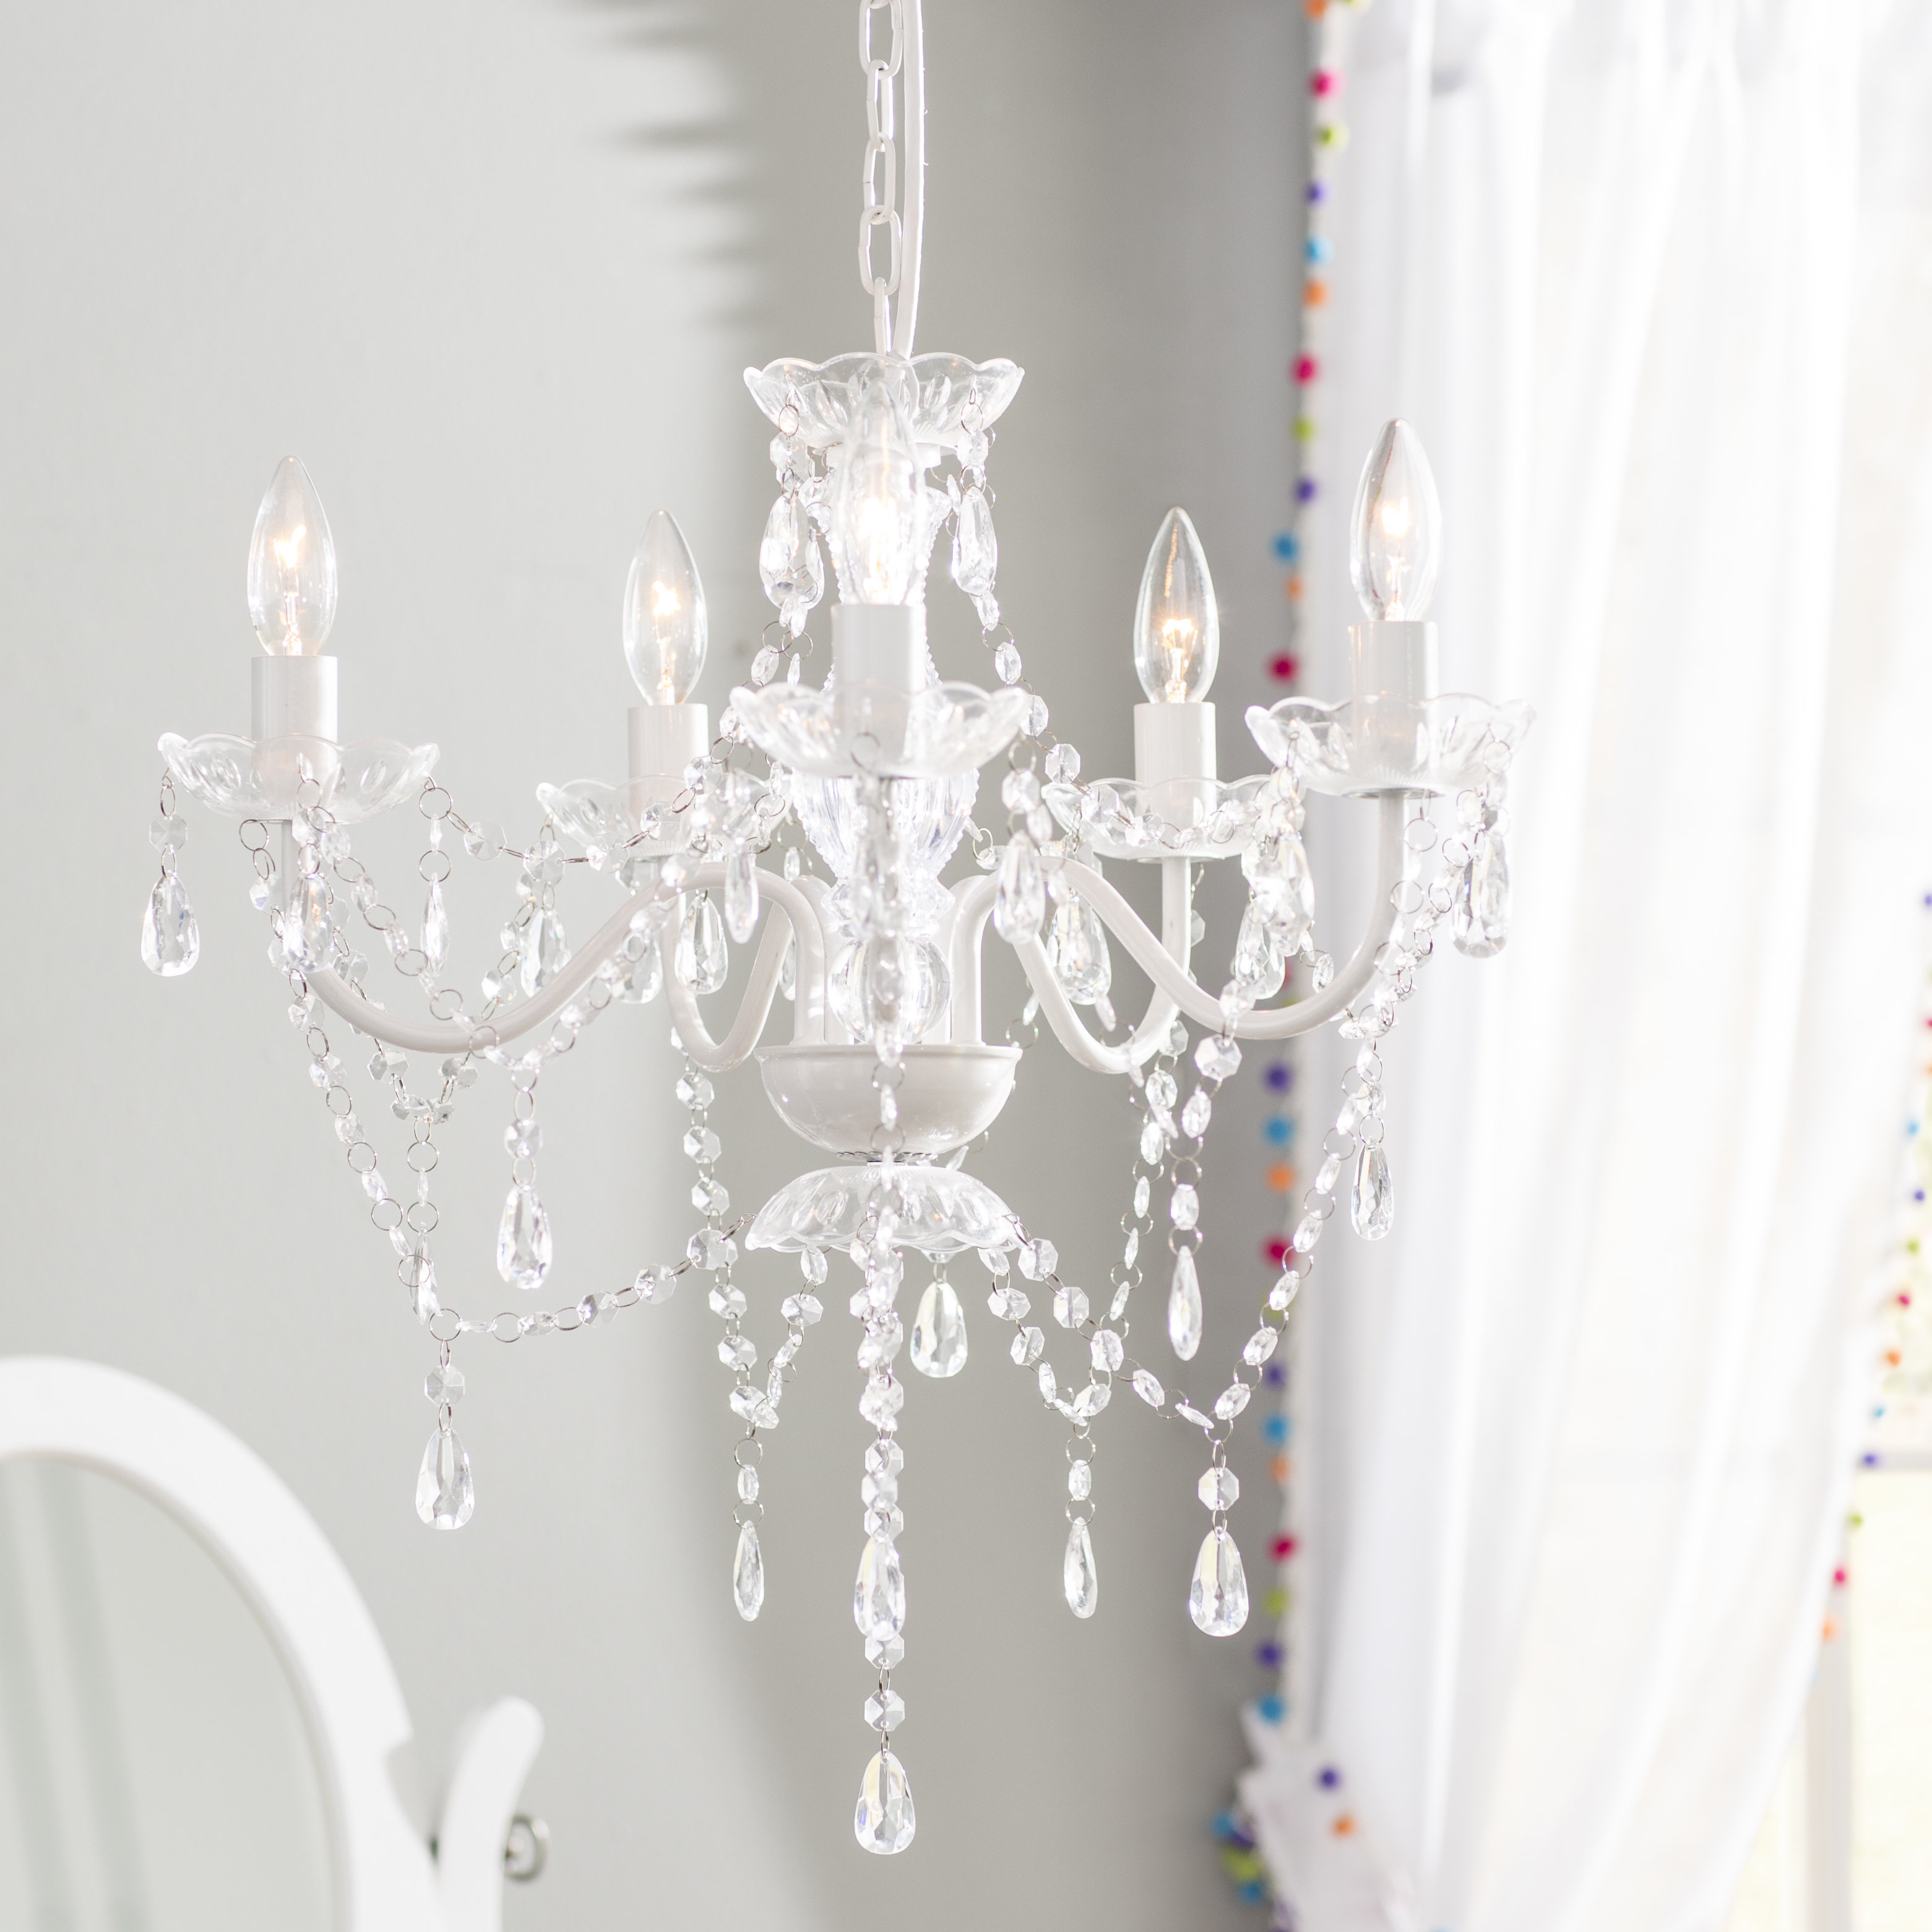 Senoia 5 Light Candle Style Chandelier Pertaining To Aldora 4 Light Candle Style Chandeliers (View 21 of 30)